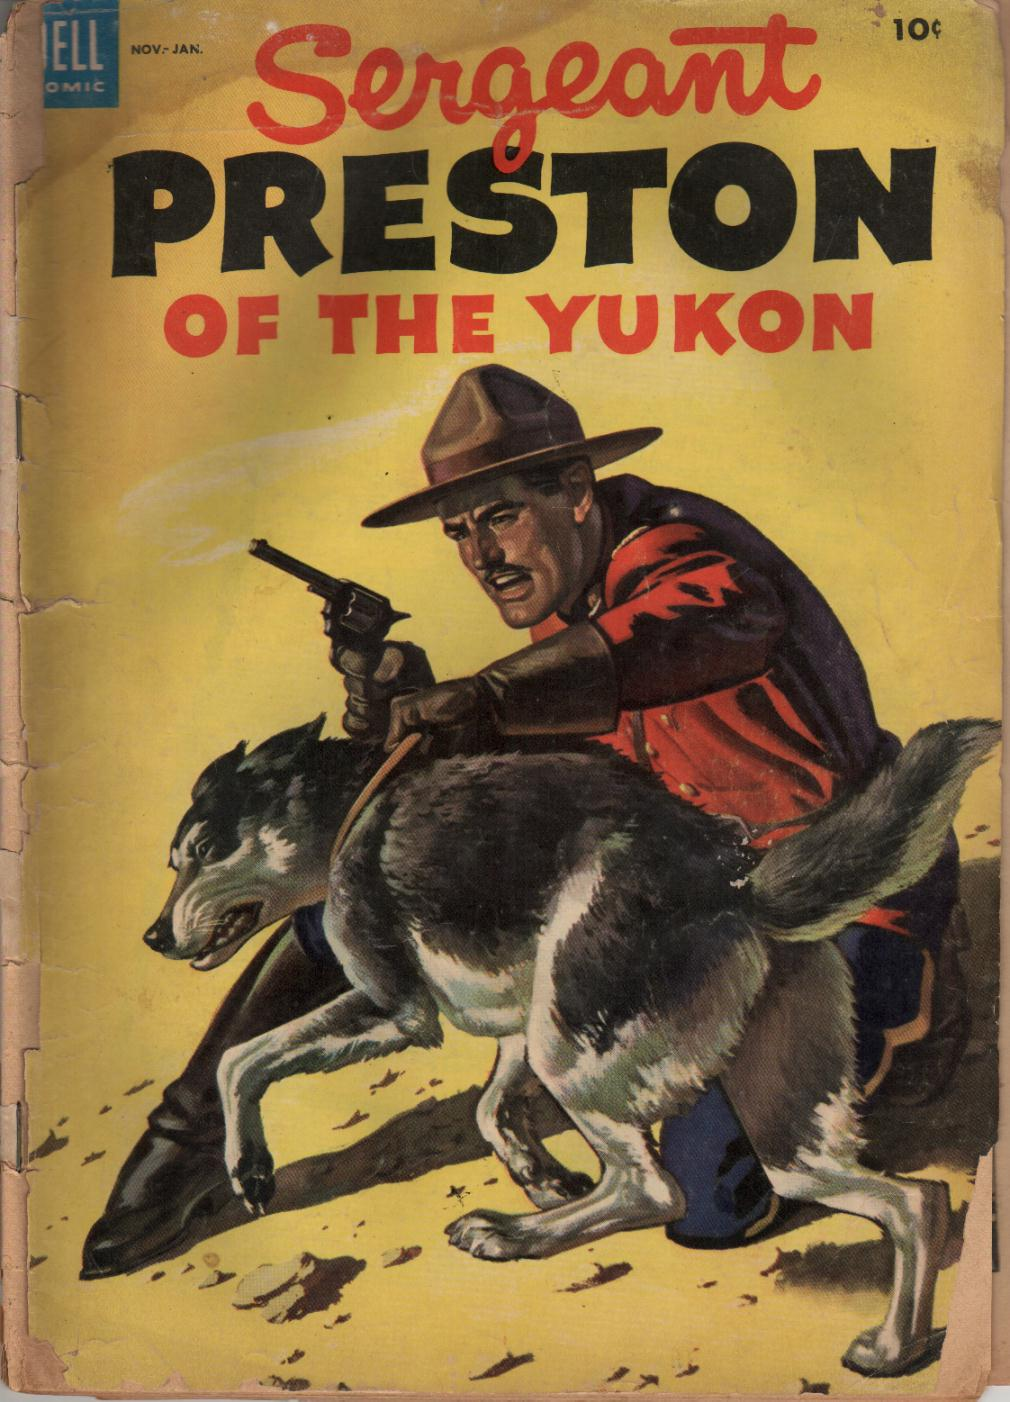 Preston of the Yukon